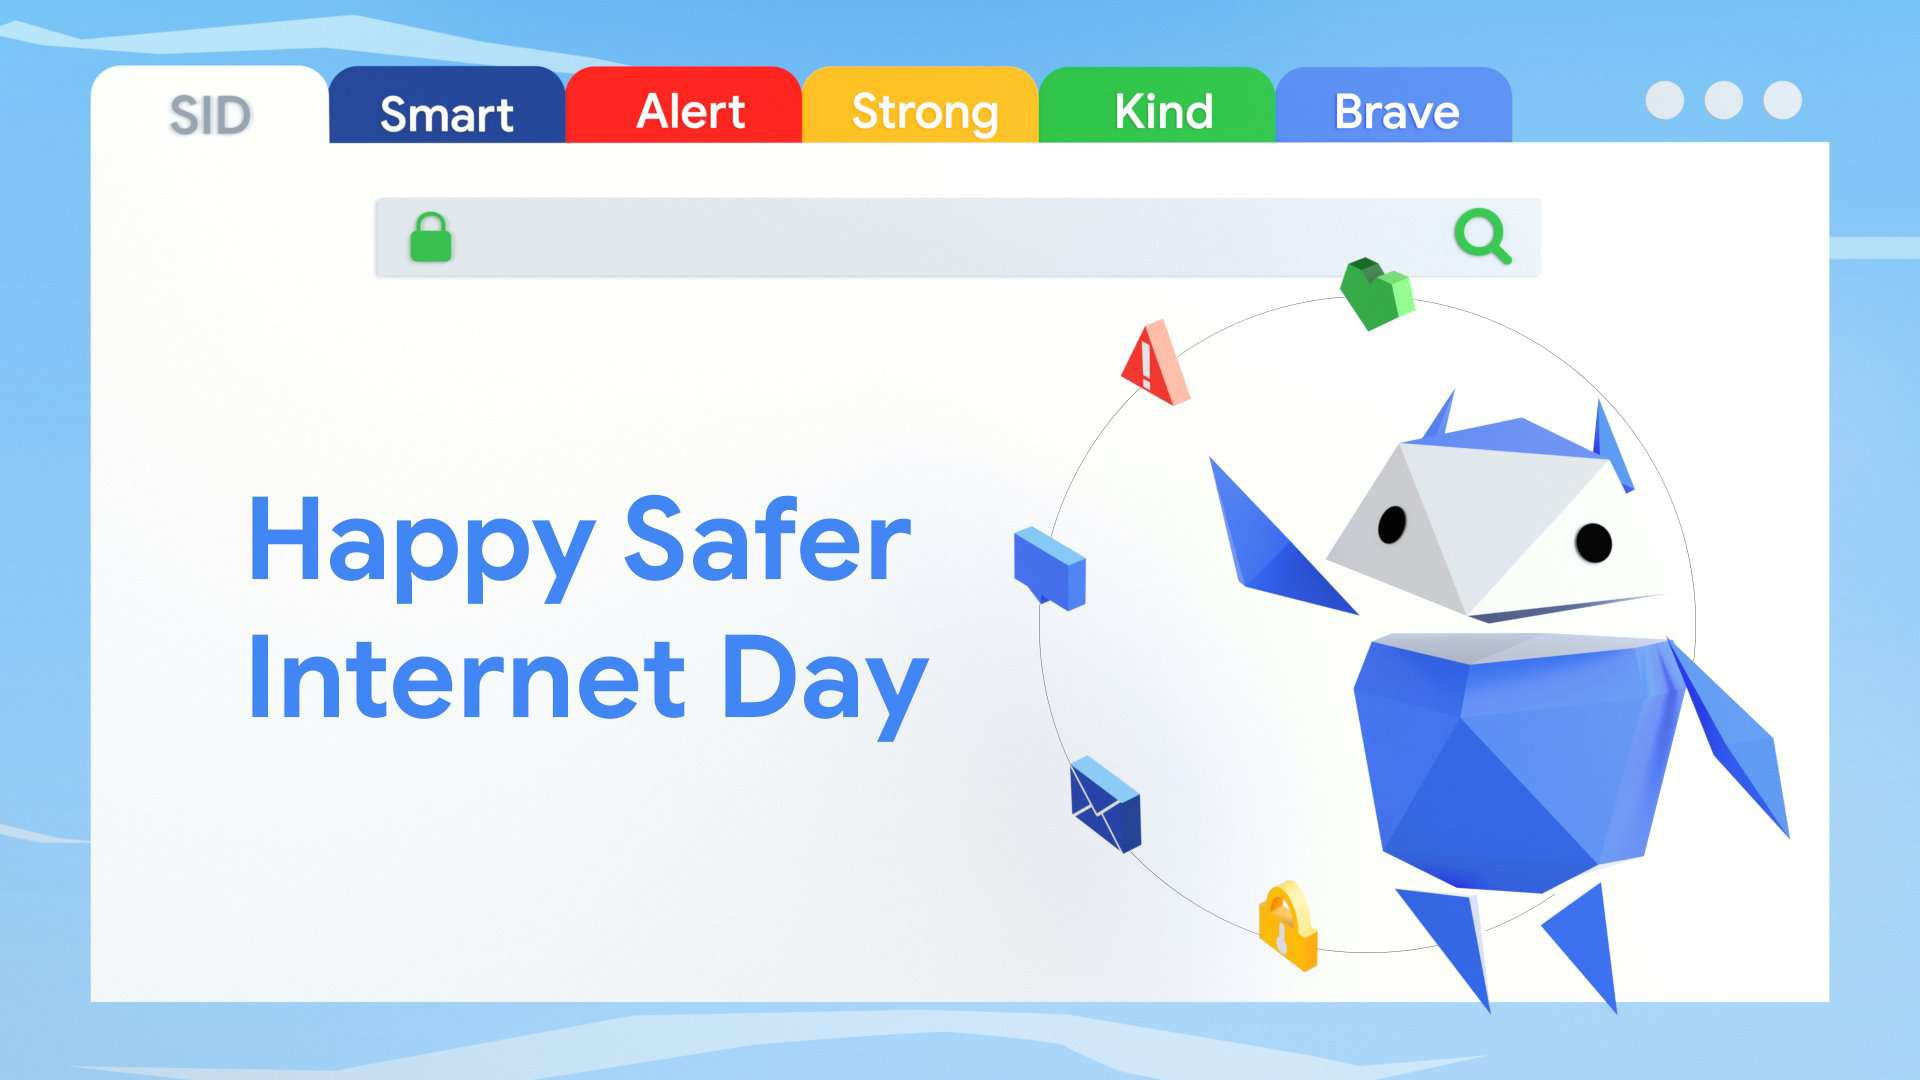 Safer Internet Day Wishes Awesome Picture